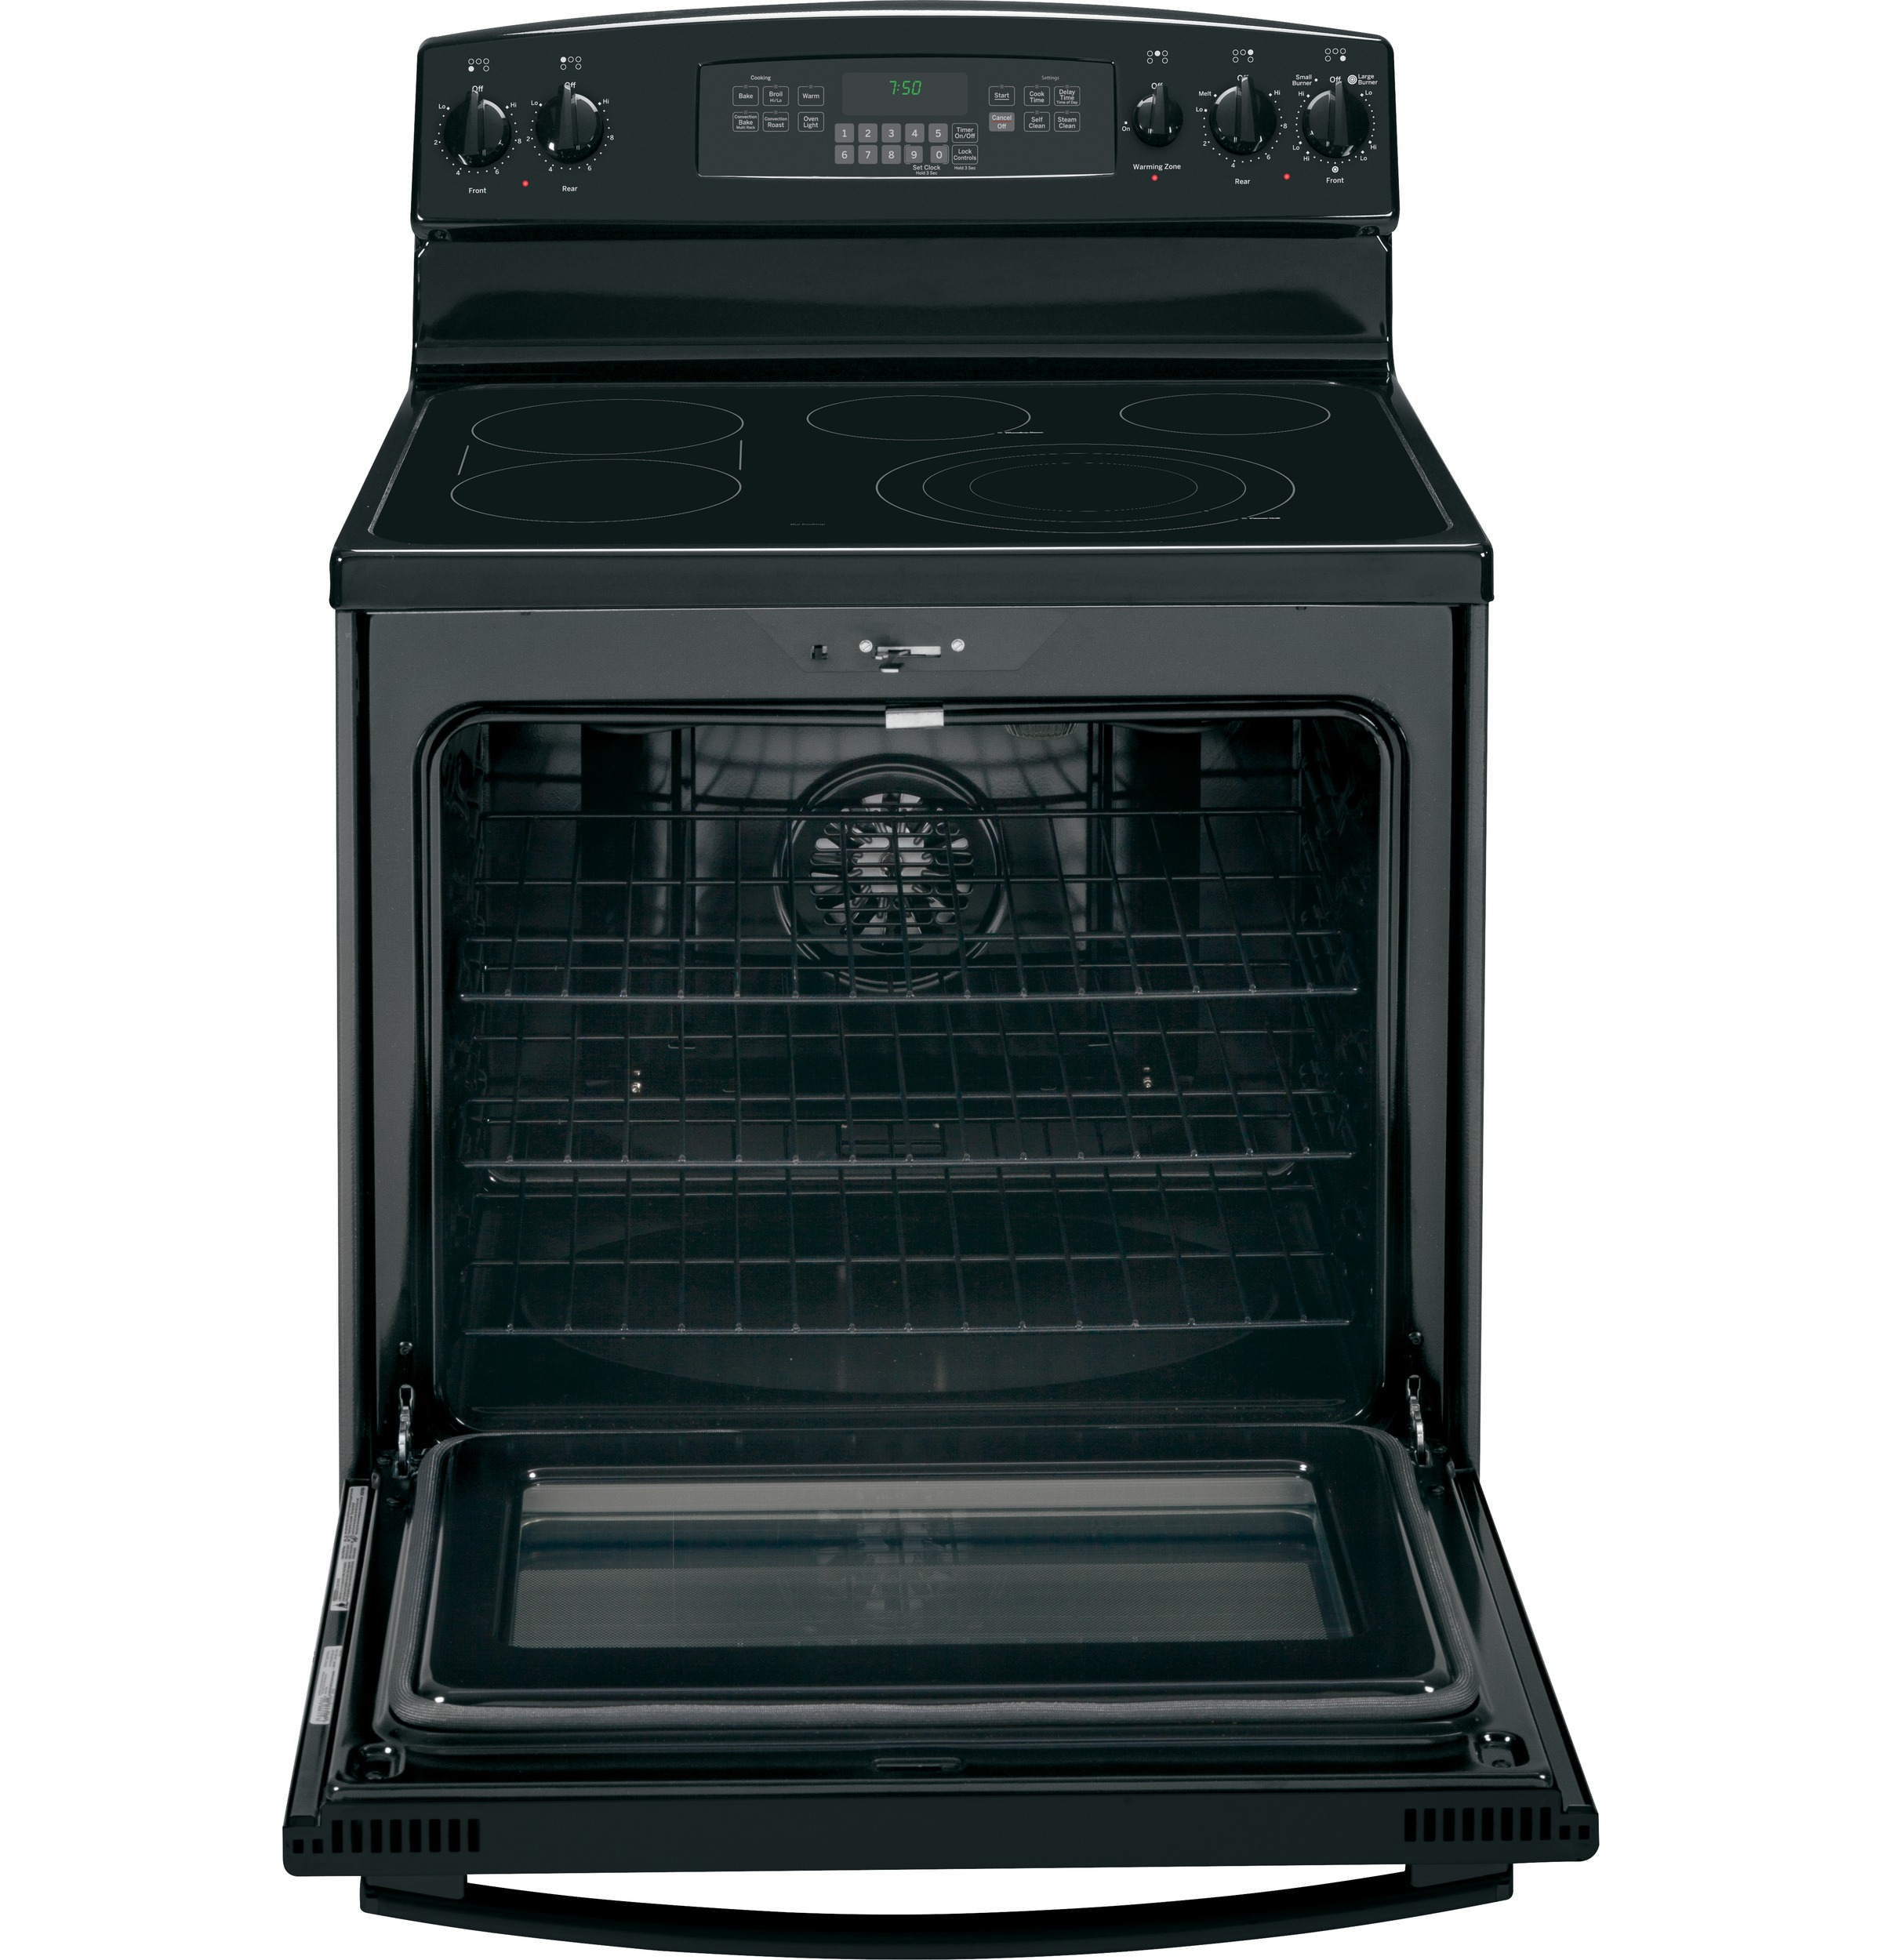 GE Appliances 5.3 cu. ft. Electric Range w/ True Convection - Black